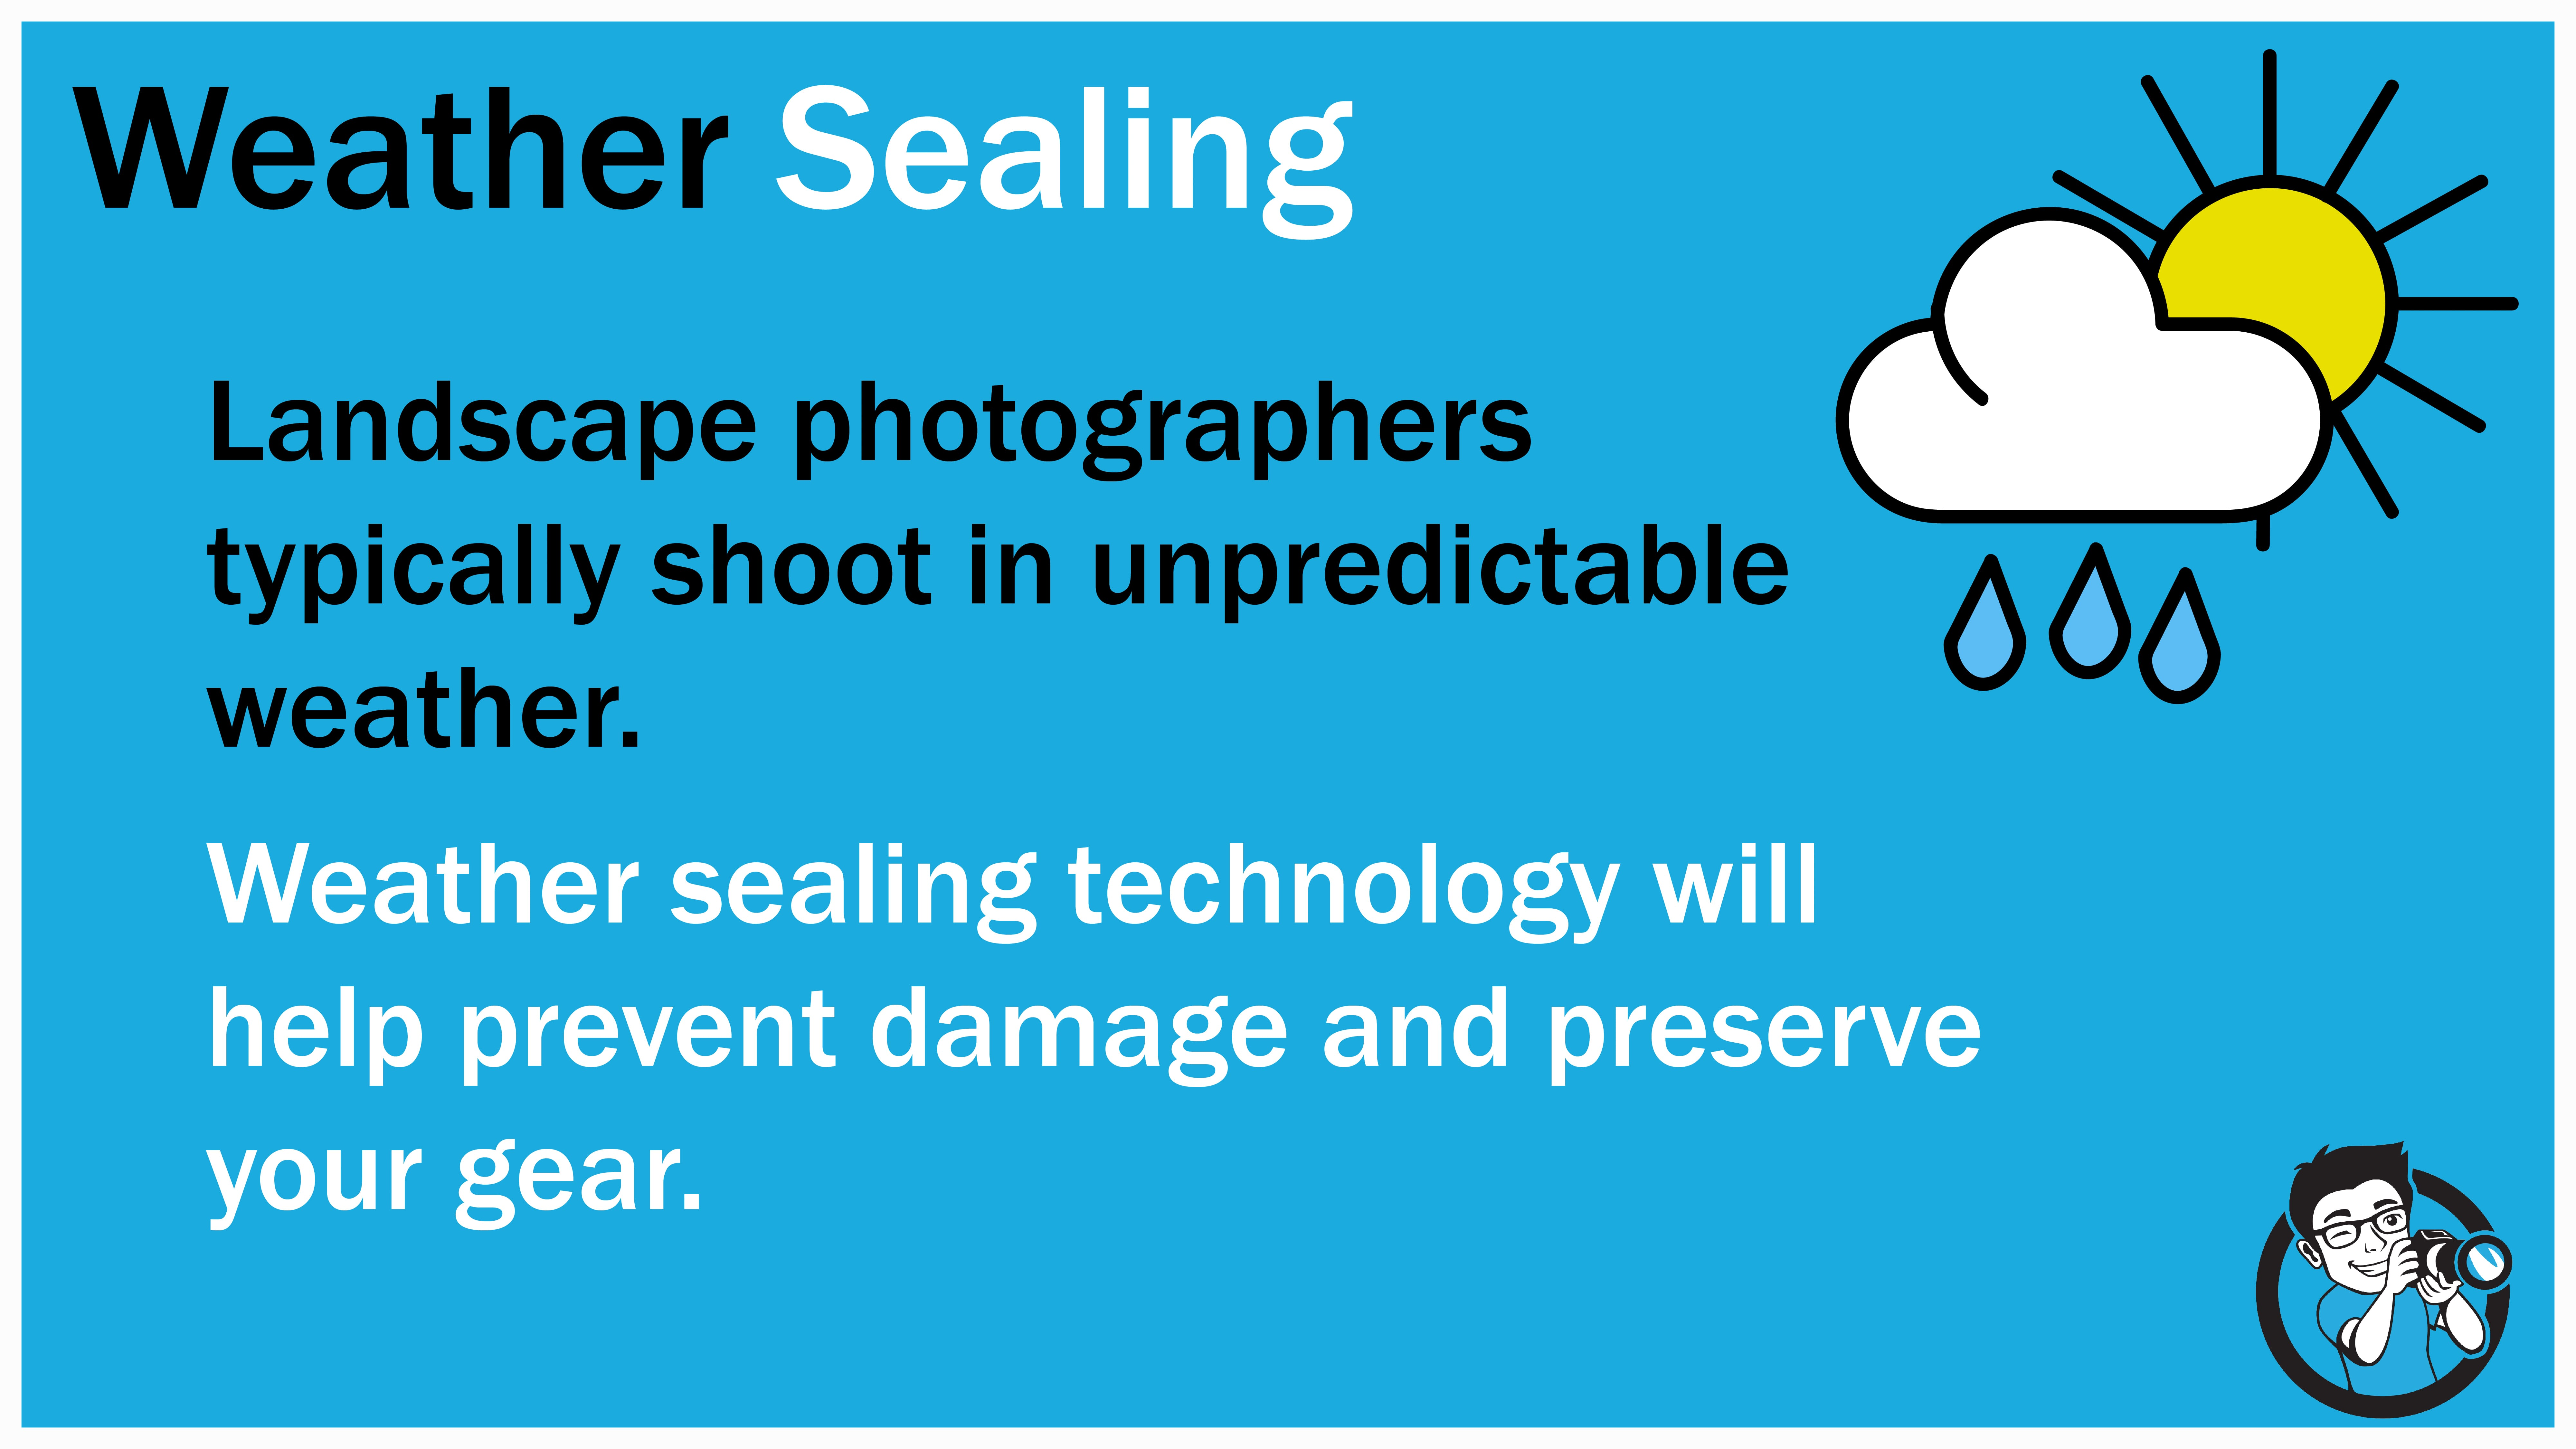 Due to the unpredictablity of weather, weather-sealing is a really useful protective measure for landscape photographers.